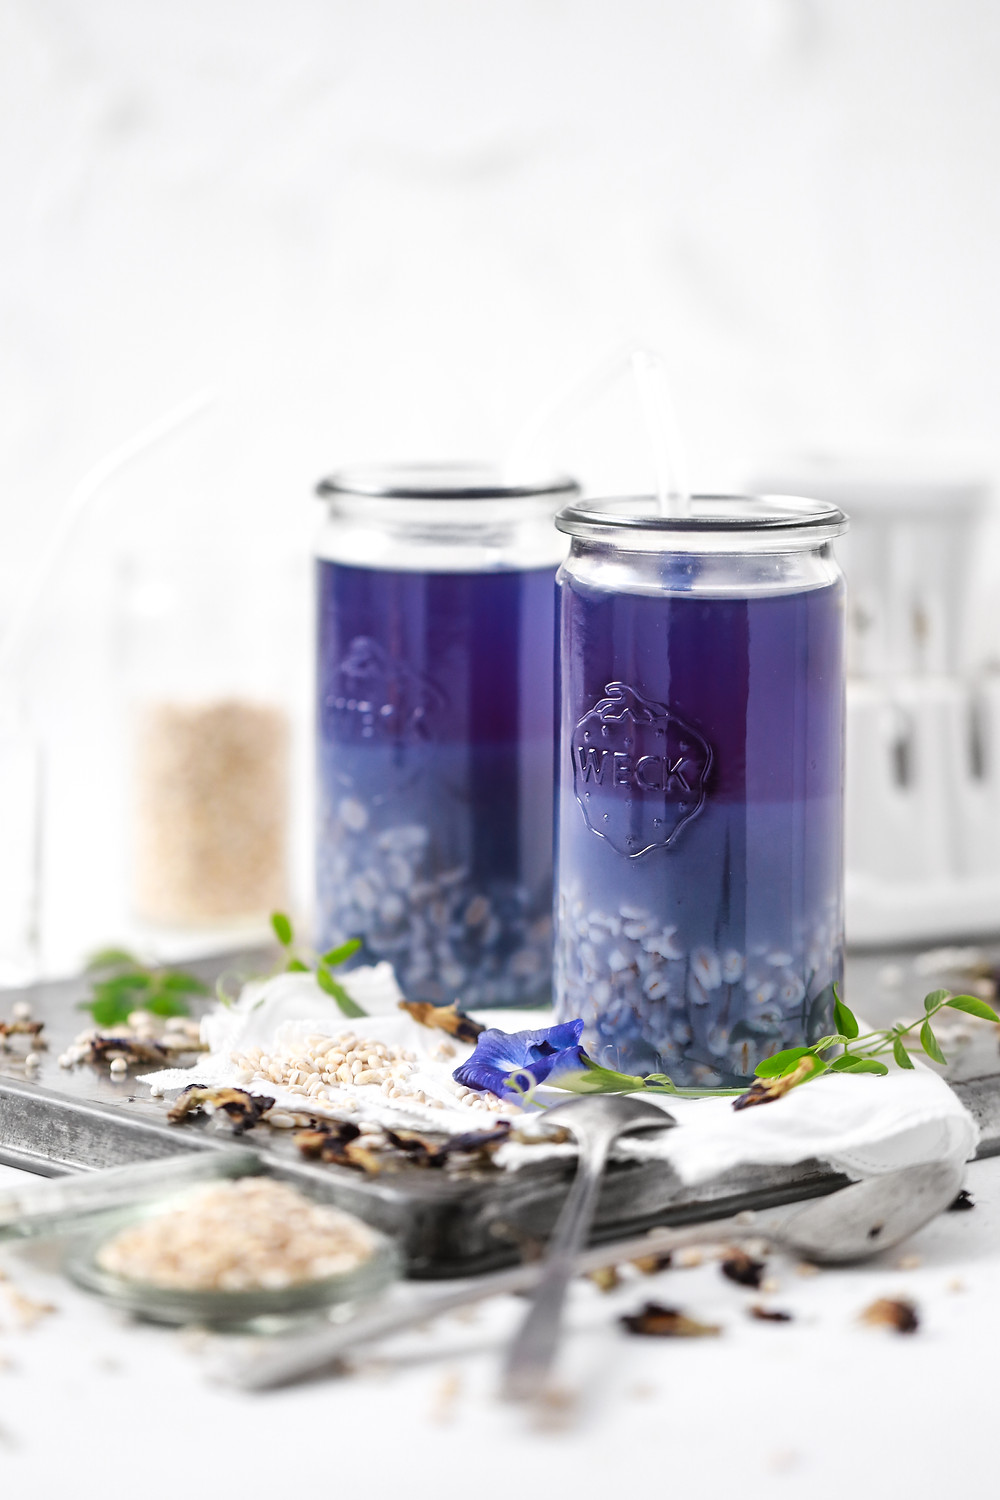 Blue Tea Barley Drink | My Blue Tea